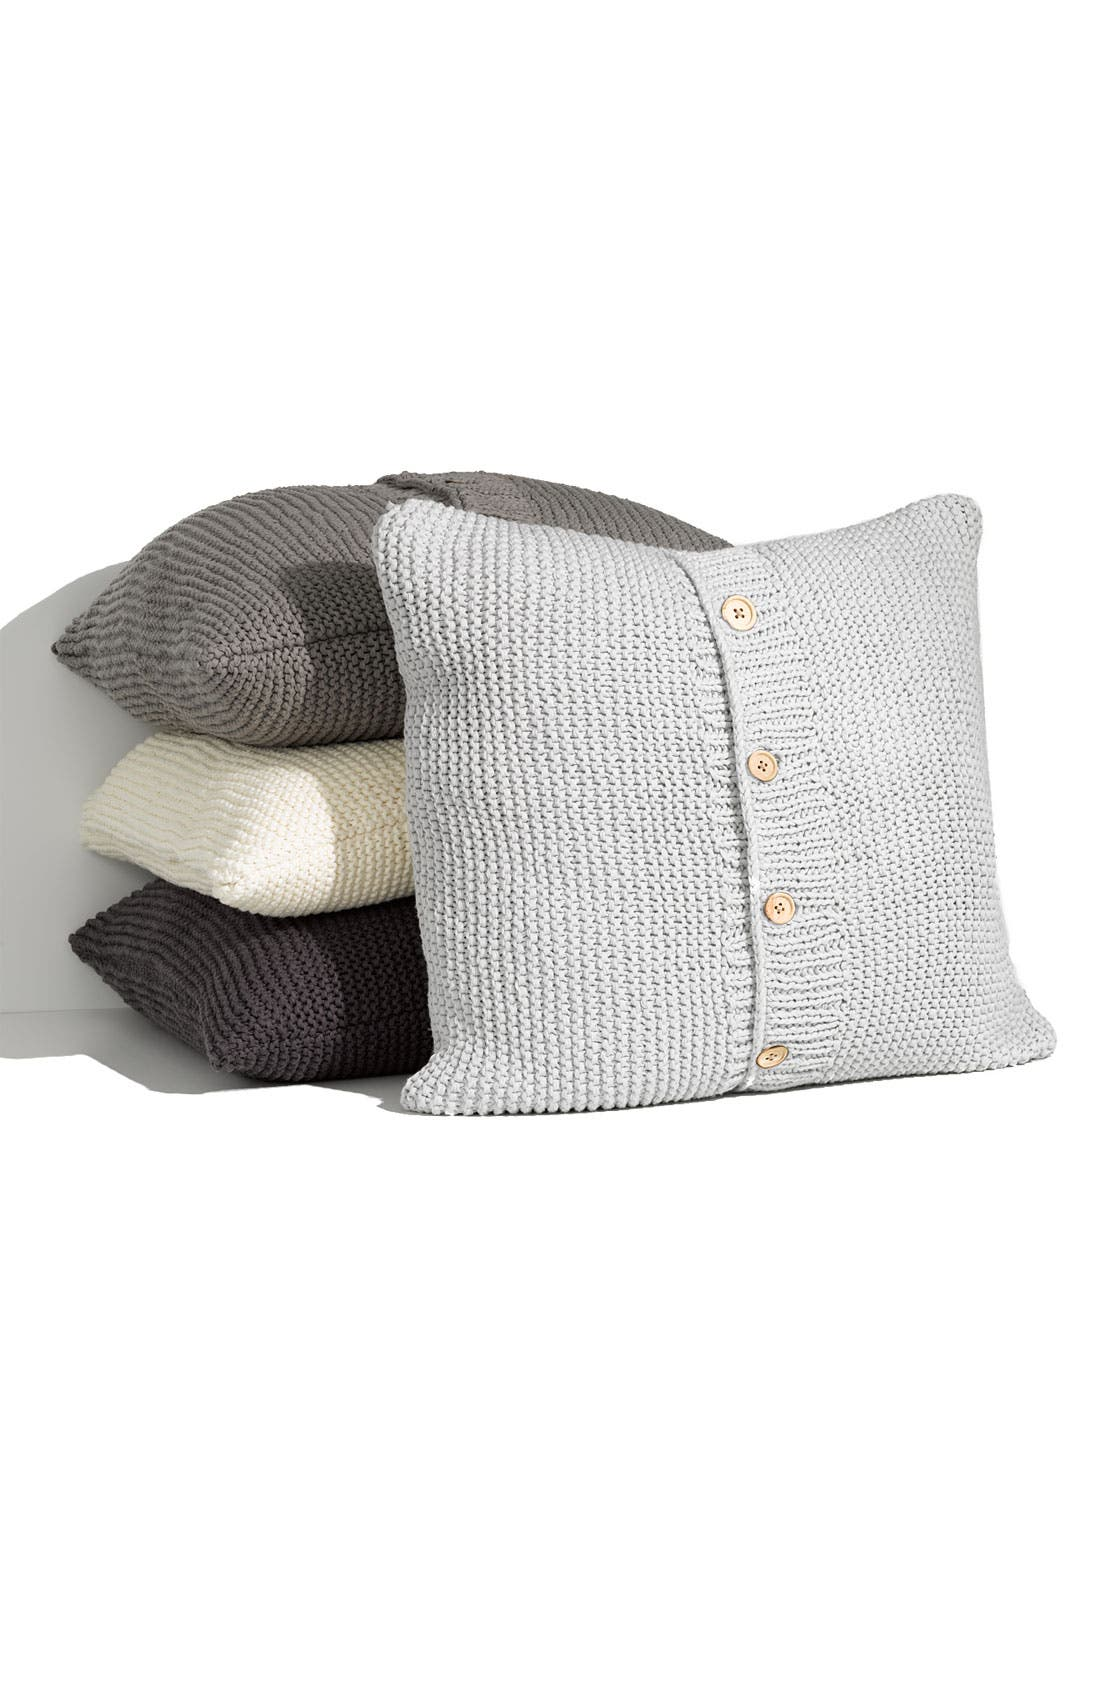 Alternate Image 1 Selected - Nordstrom Chunky Knit Euro Pillow Sham